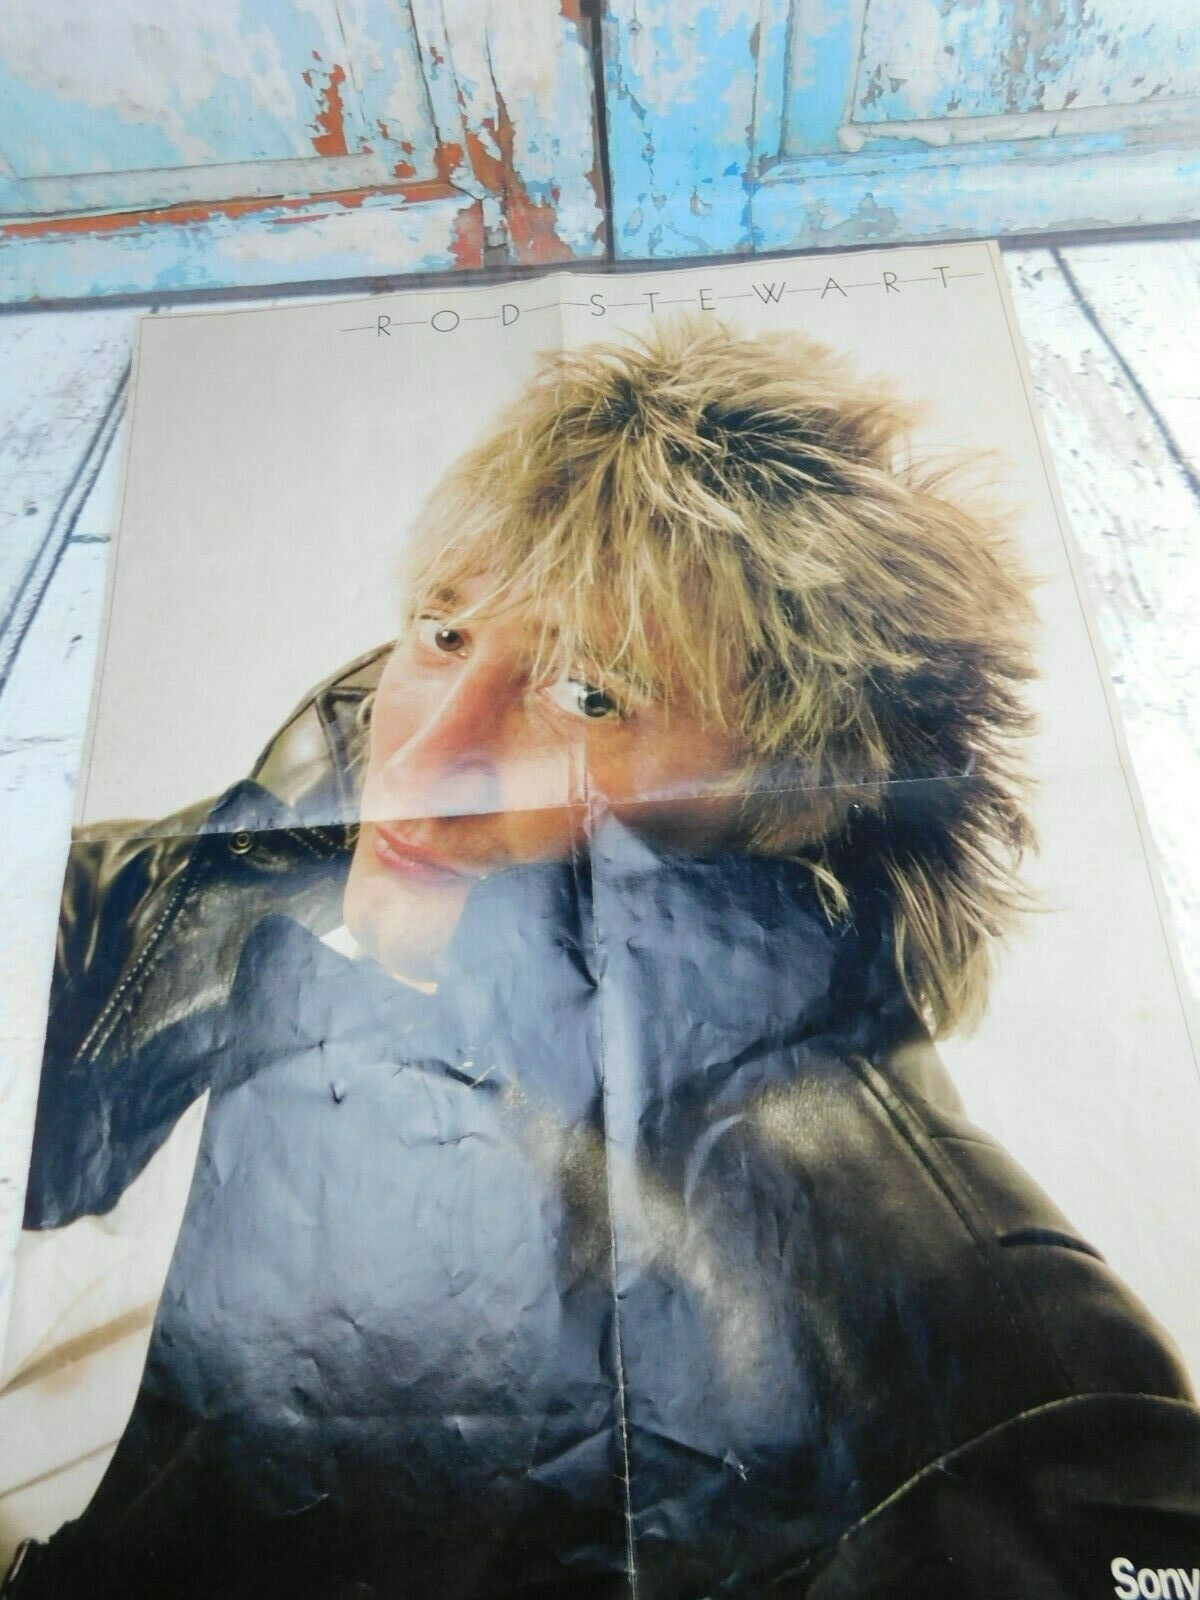 Primary image for Rockbill Rod Stewart 1981 Sony Tape Concert Fold Out Poster